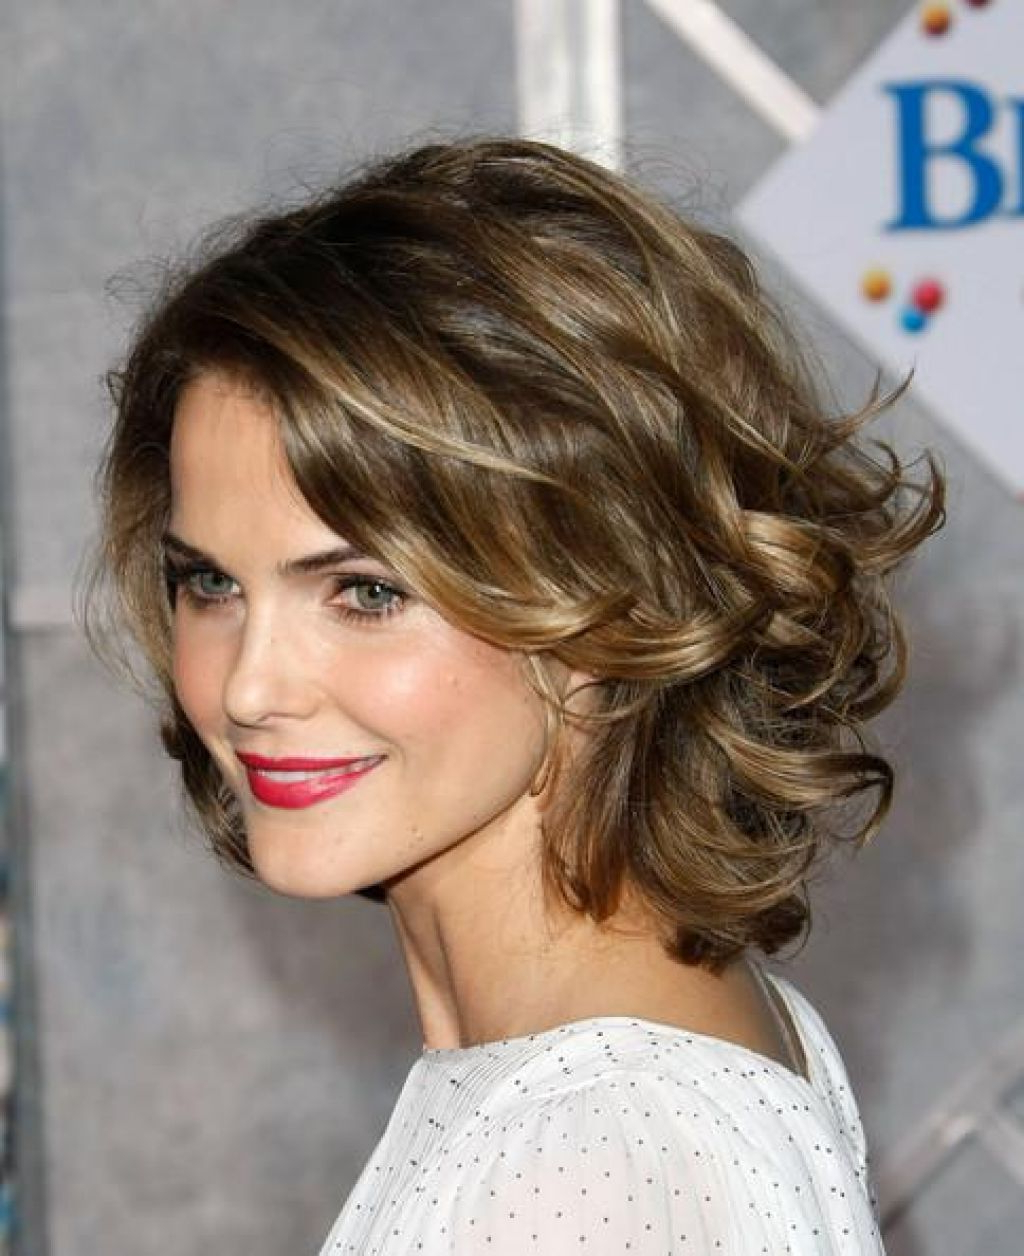 Most Popular Spunky Medium Hairstyles Regarding 19 Short To Medium Cuts For Curly And Wavy Hair (View 10 of 20)